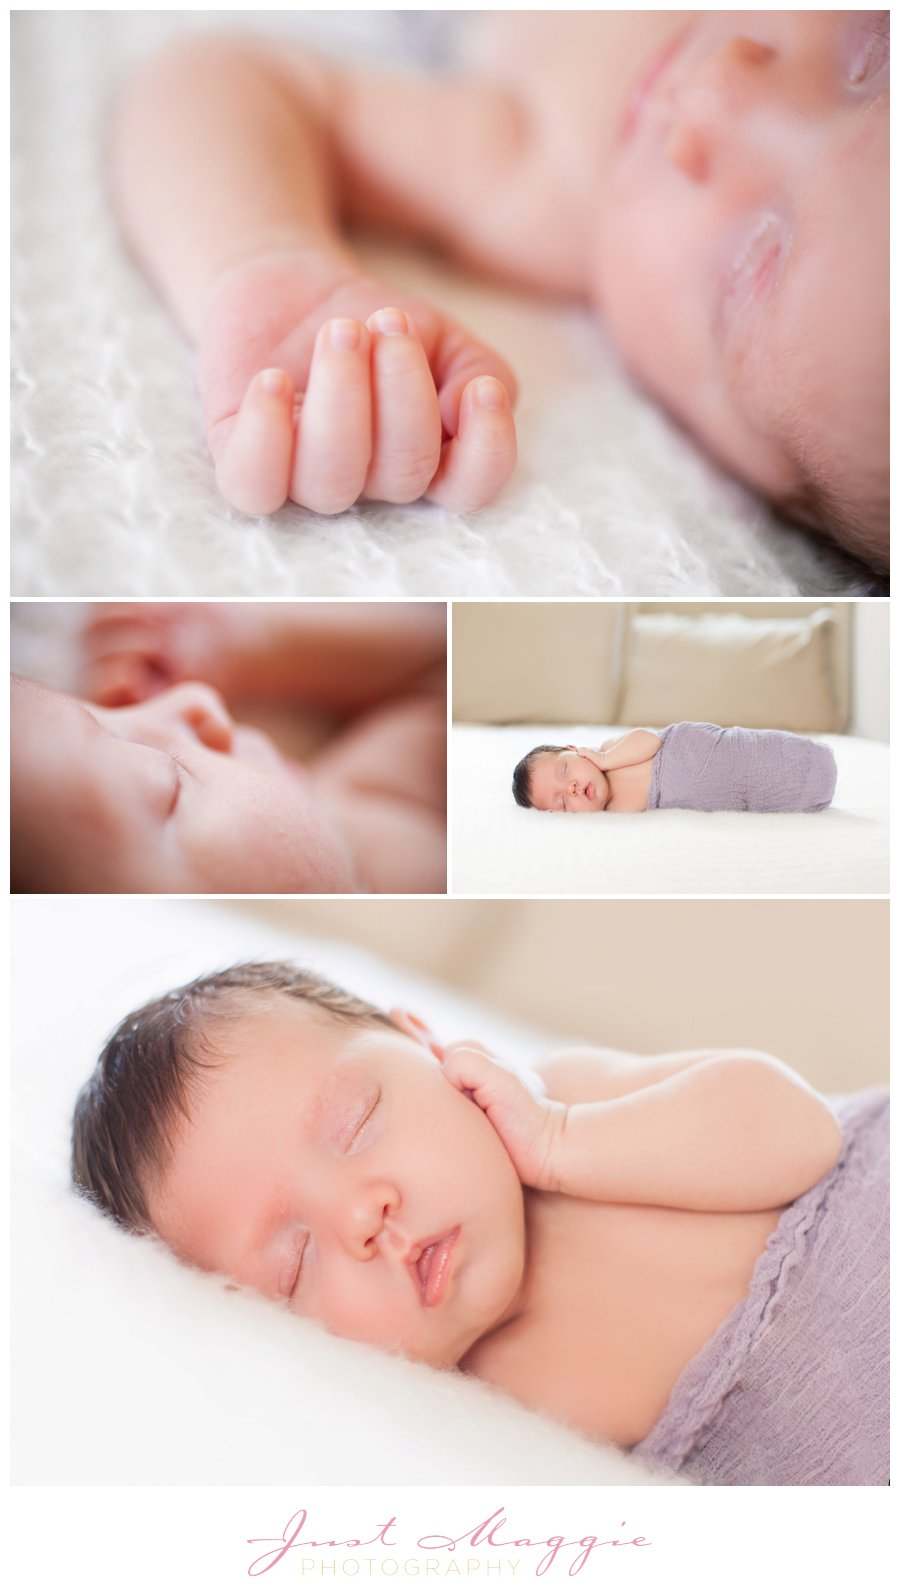 Swaddled Newborn Girl by Just Maggie Photograpy - Los Angeles Newborn Photographer